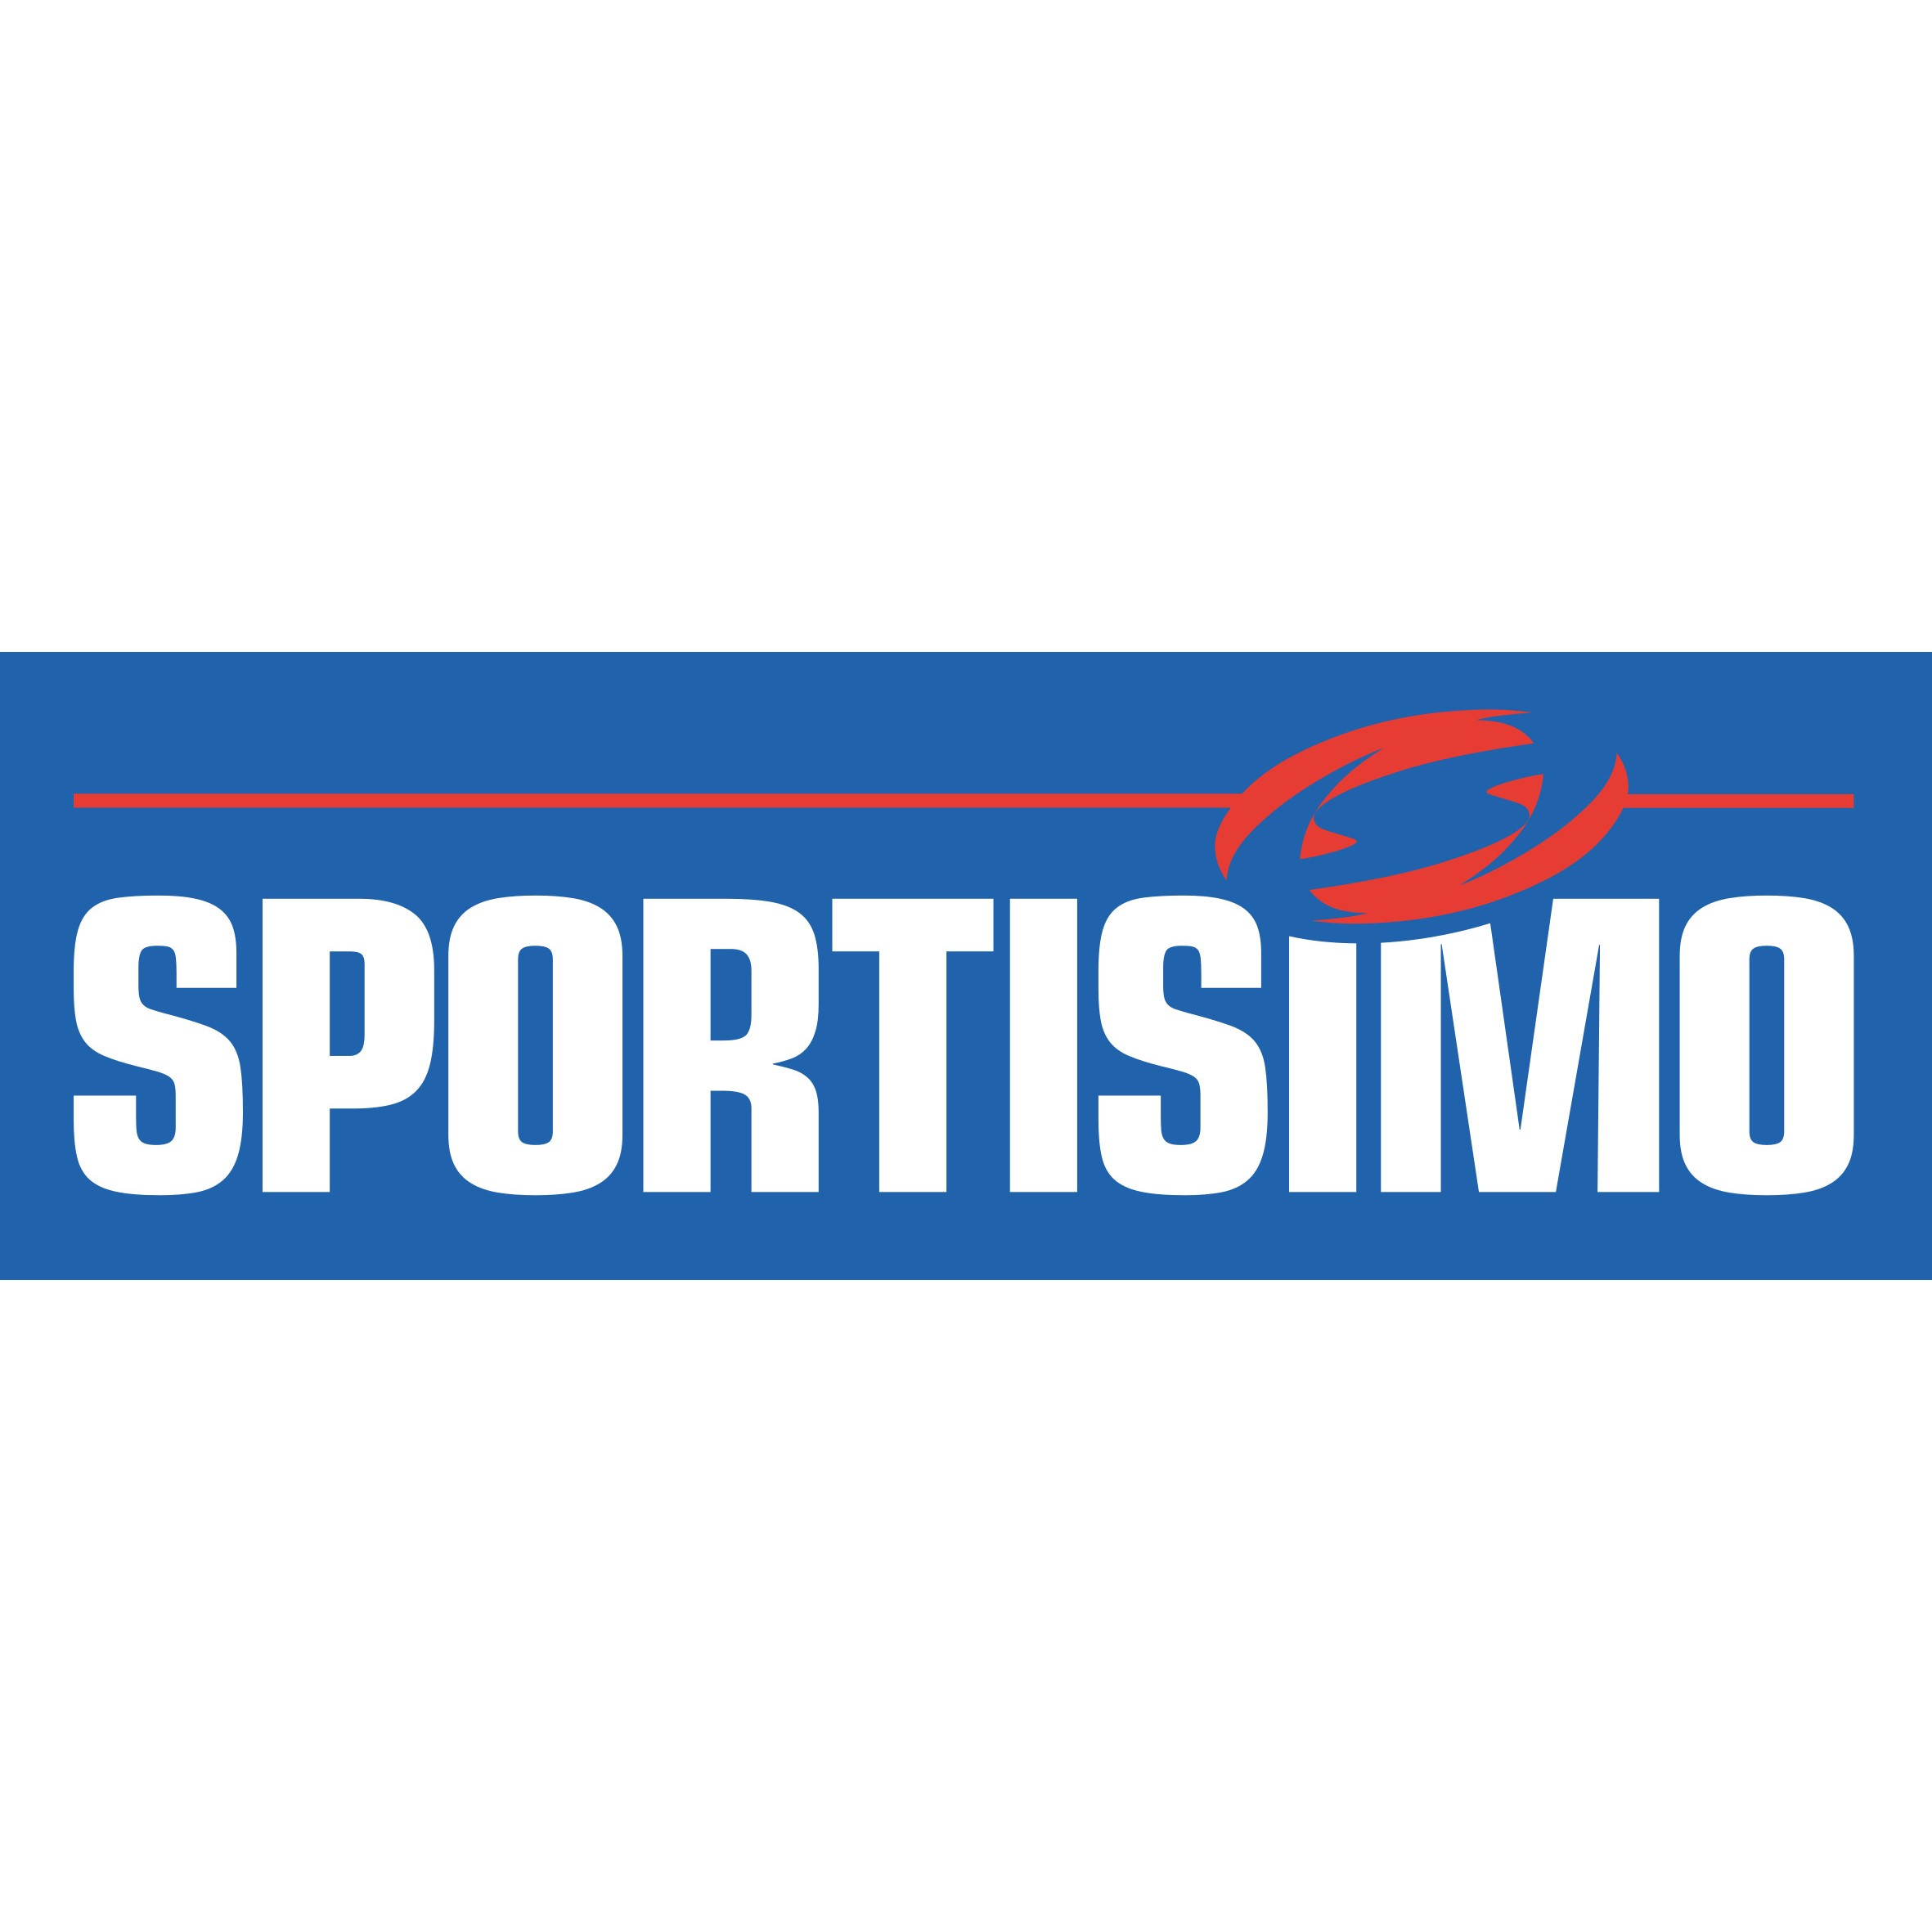 articole sportive magazin sportisimo dn1 value centre